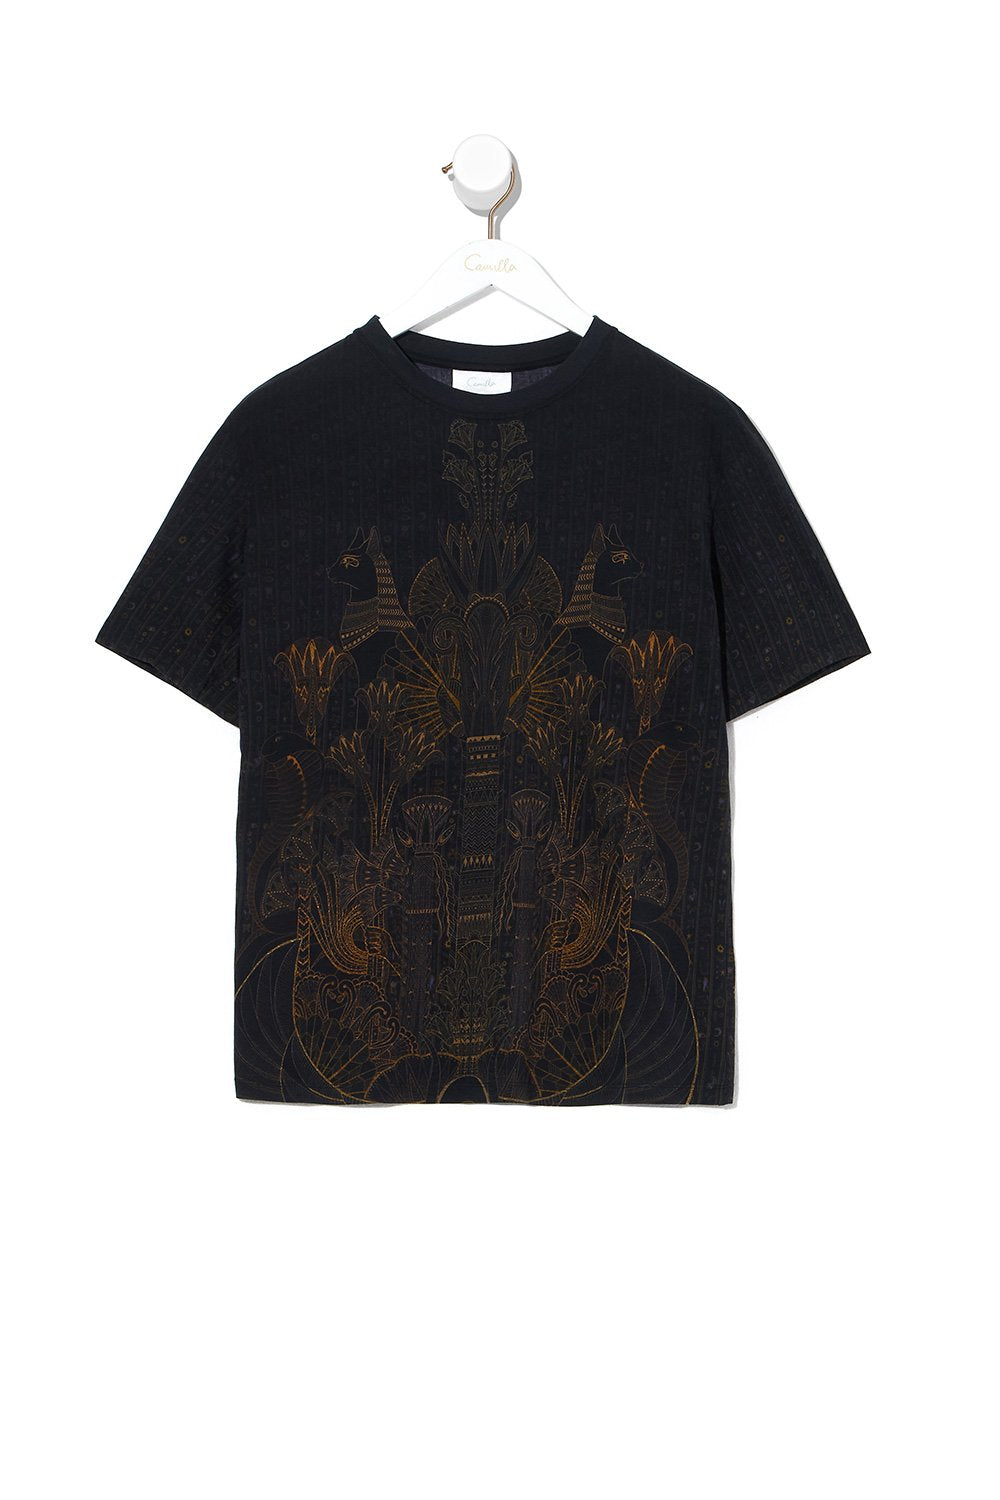 ROUND NECK T SHIRT COBRA KING